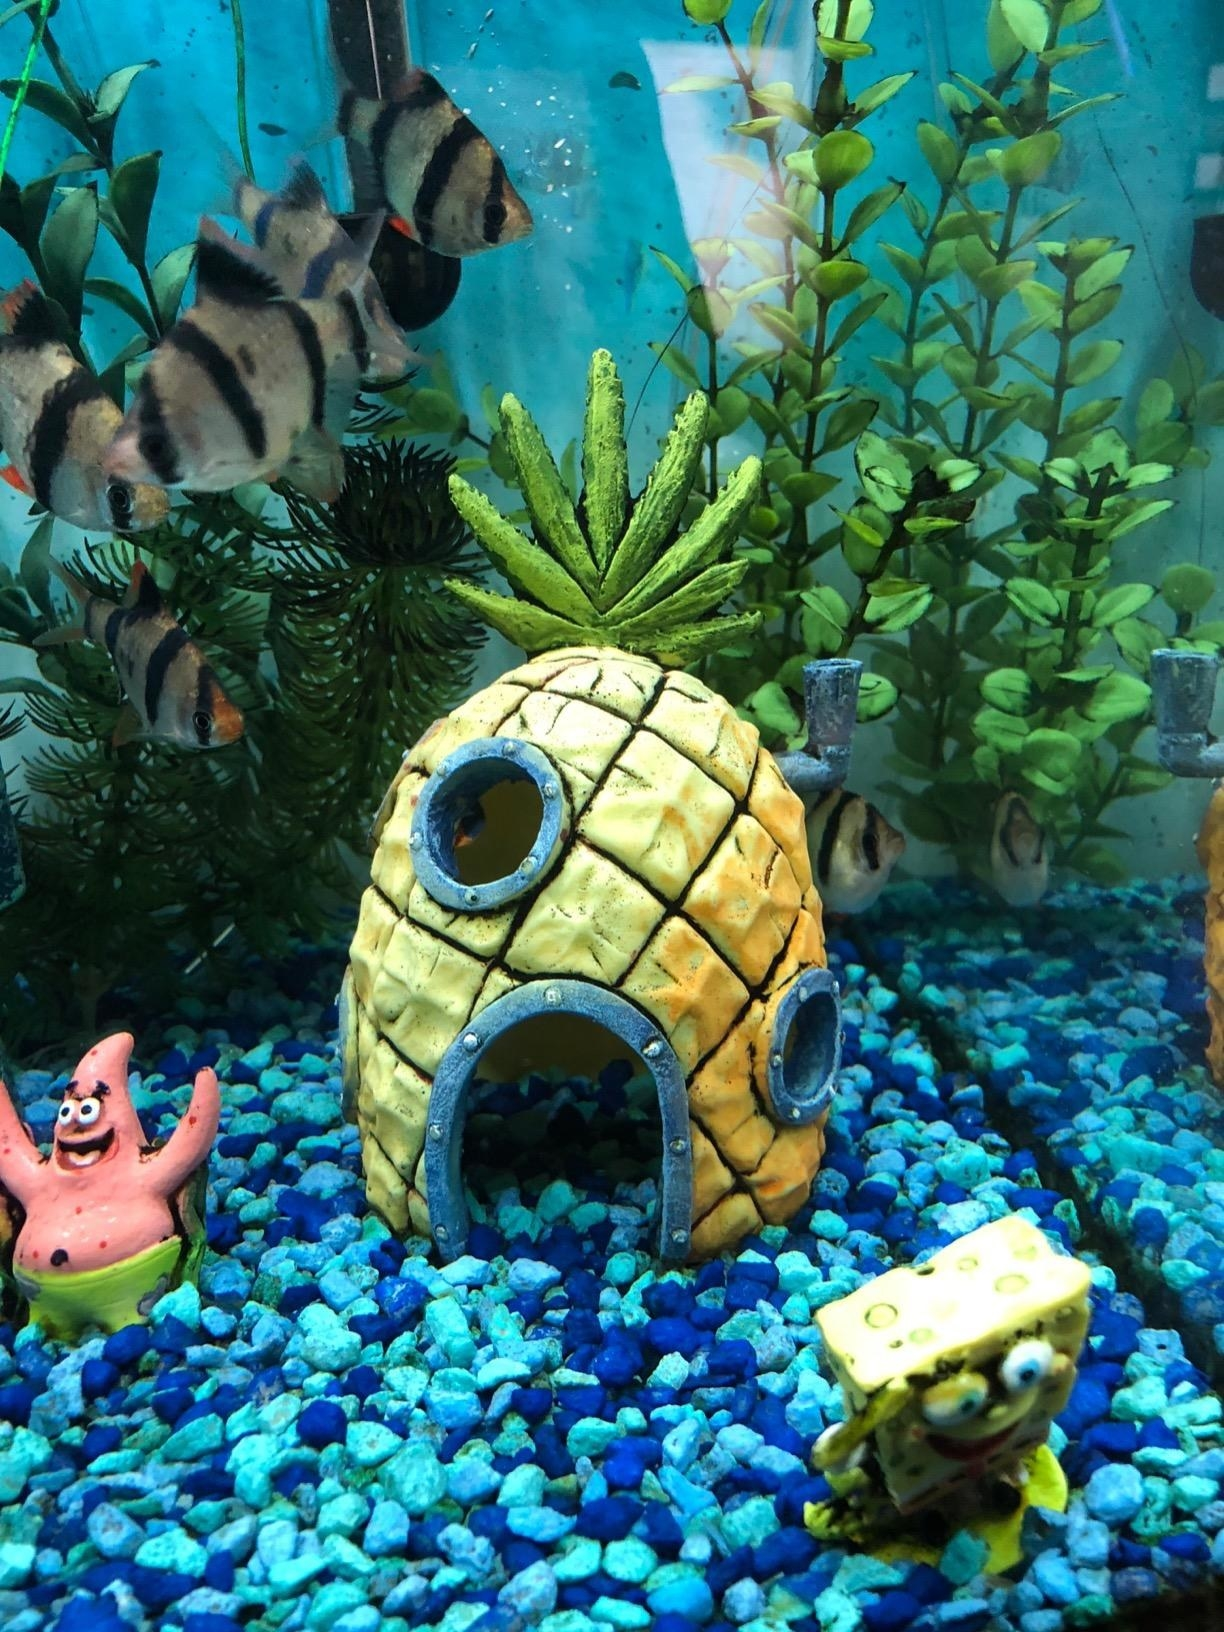 24 Spongebob Squarepants Gifts That Are Really Dolphin